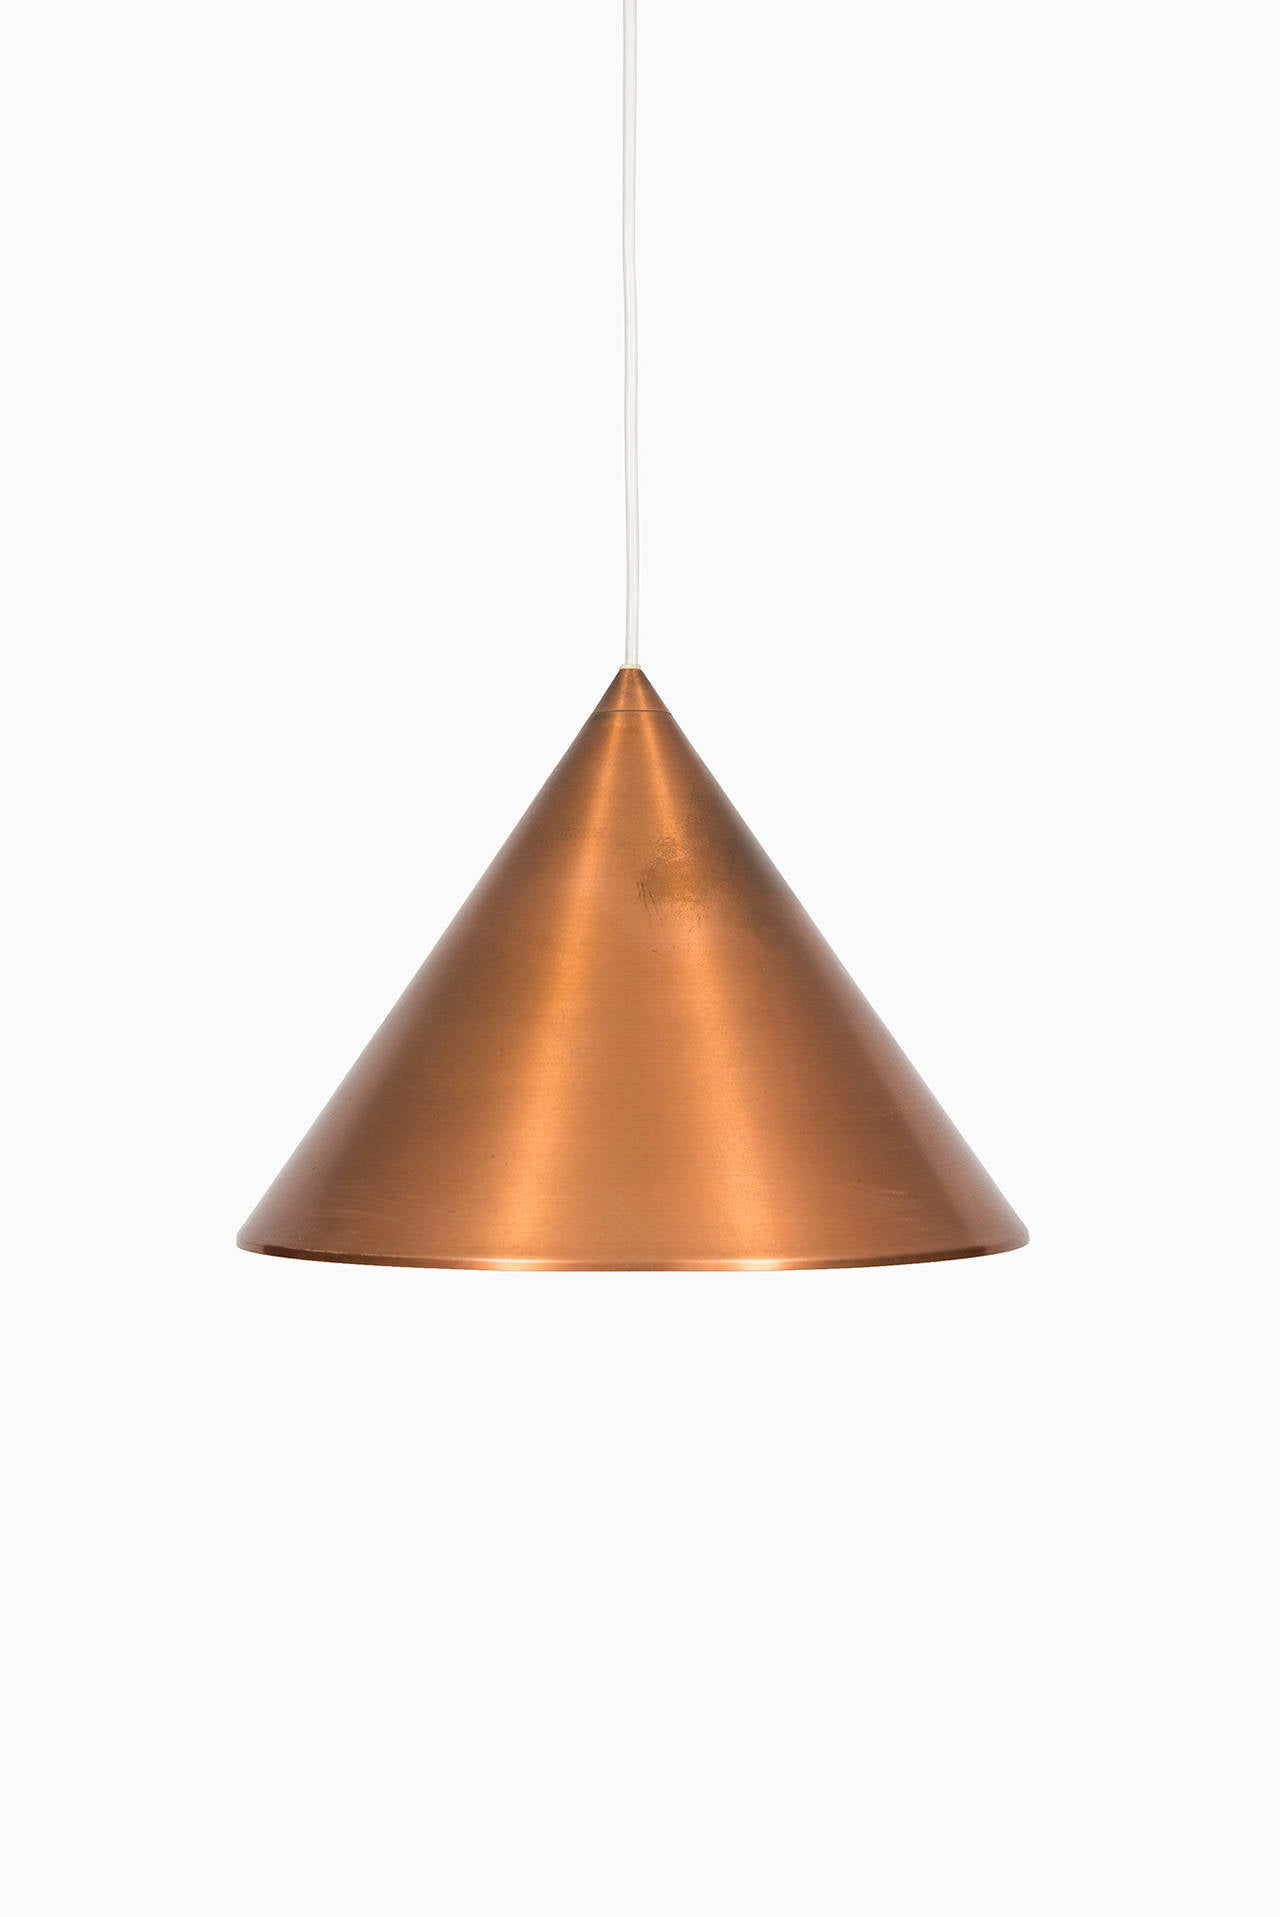 Mid century ceiling lamp in copper by lyfa in denmark for for Mid century ceiling lamp